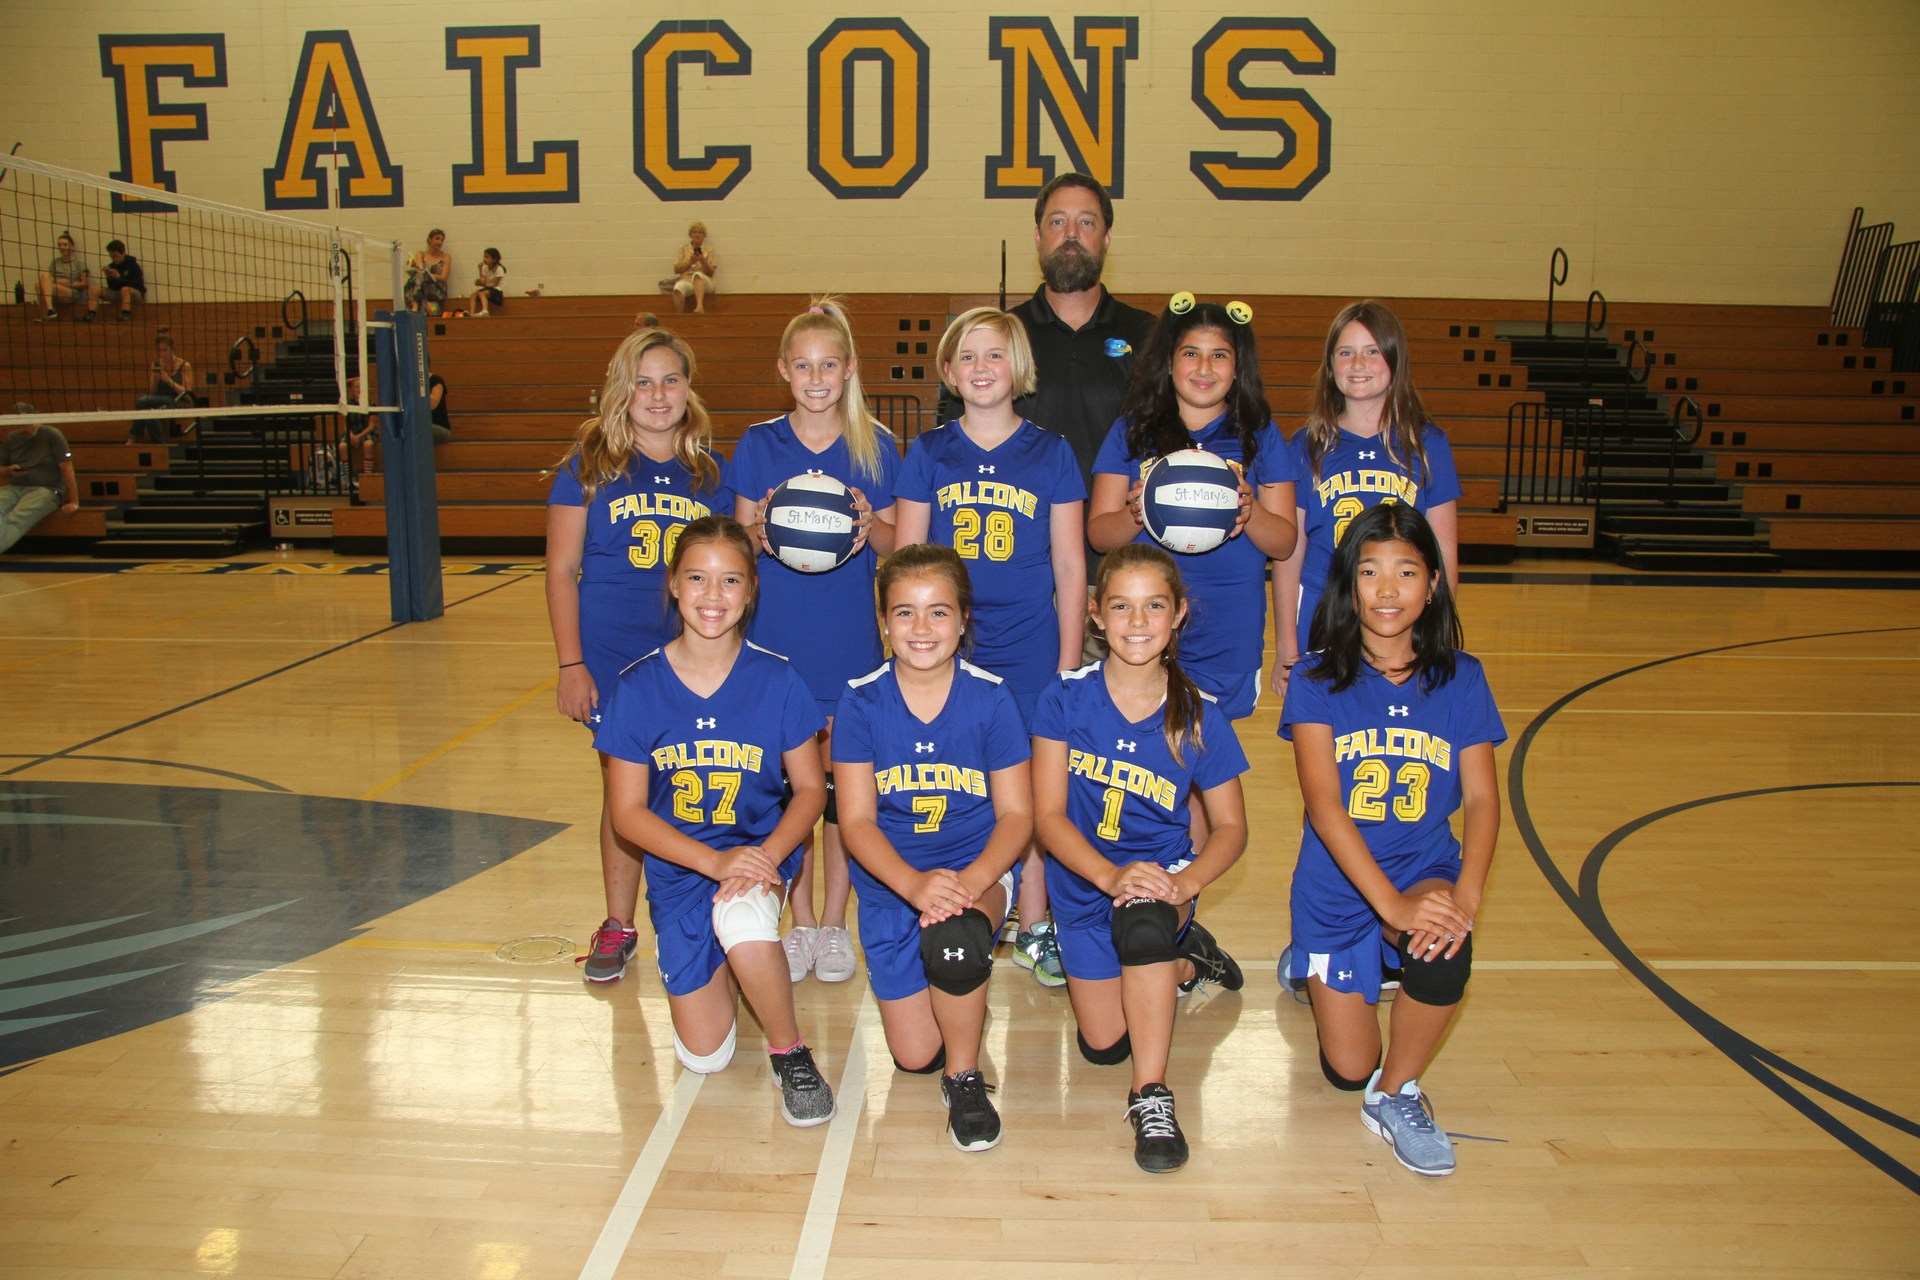 Team photo of Mountain B girls volleyball